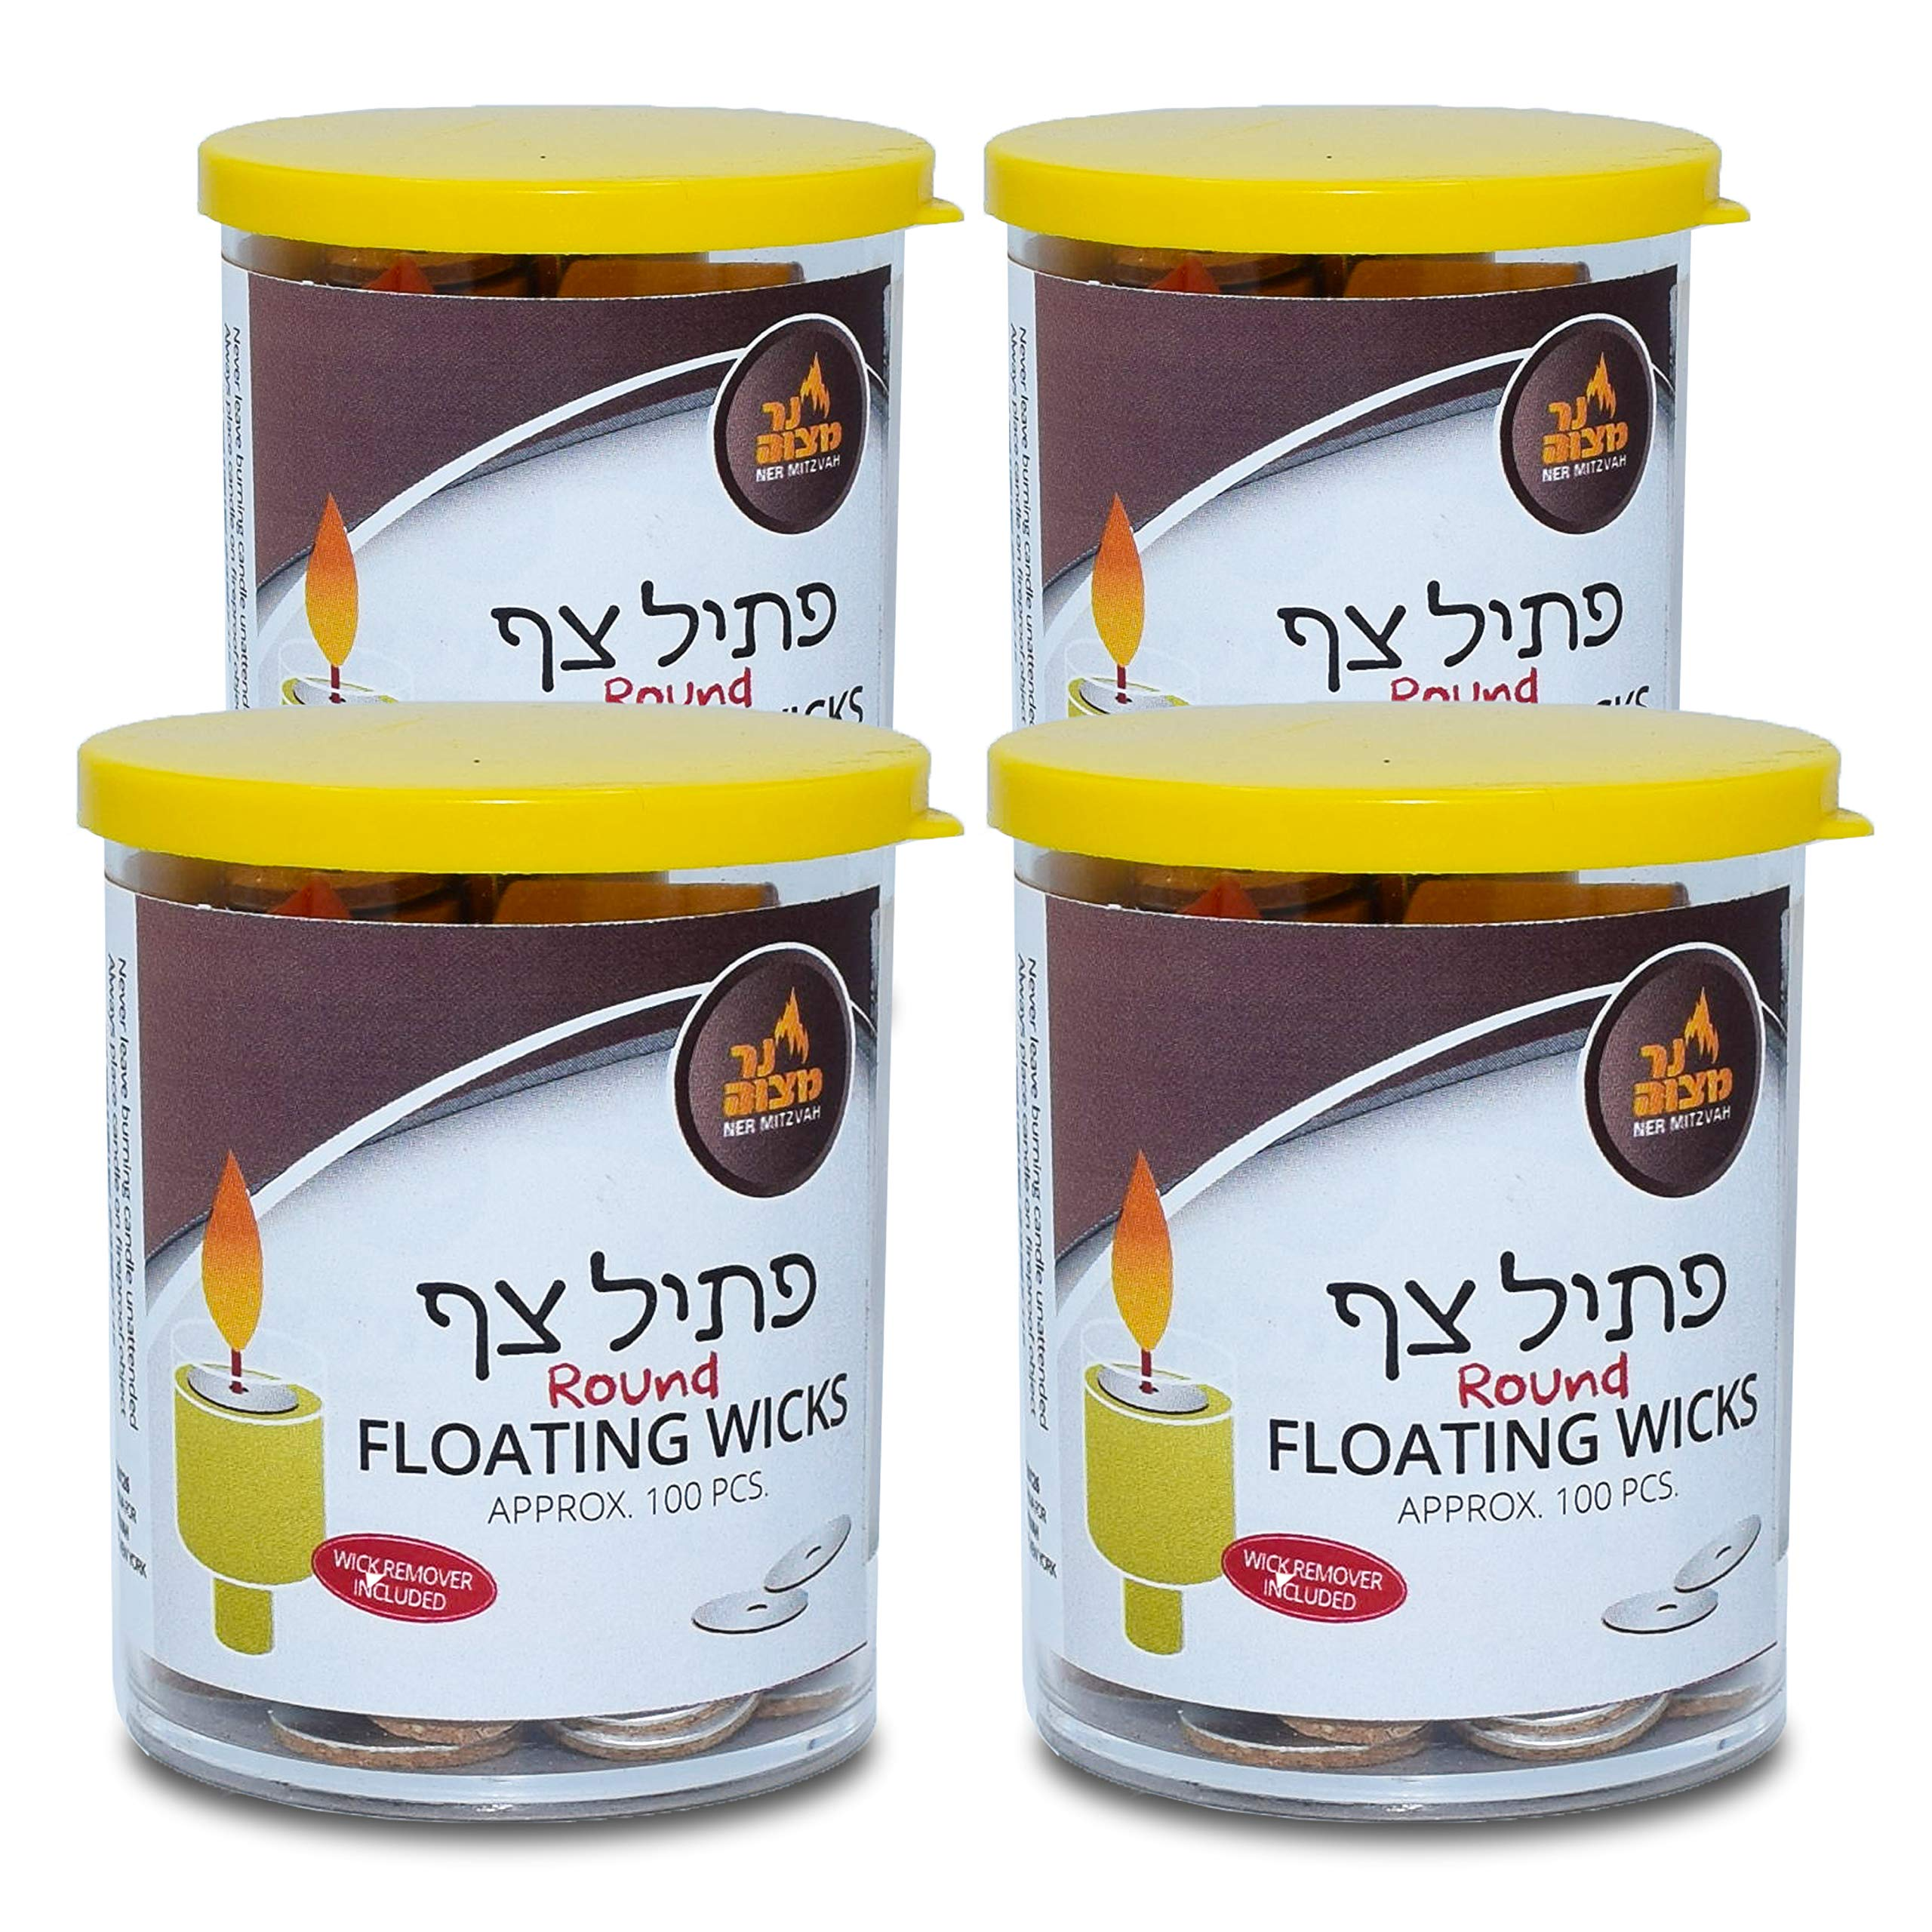 Ner Mitzvah Round Floating Wicks – 400 Count Tub (Approx.), Cotton Wicks and Cork Disc Holders for Oil Cups - Bonus Wick Removal Tweezers